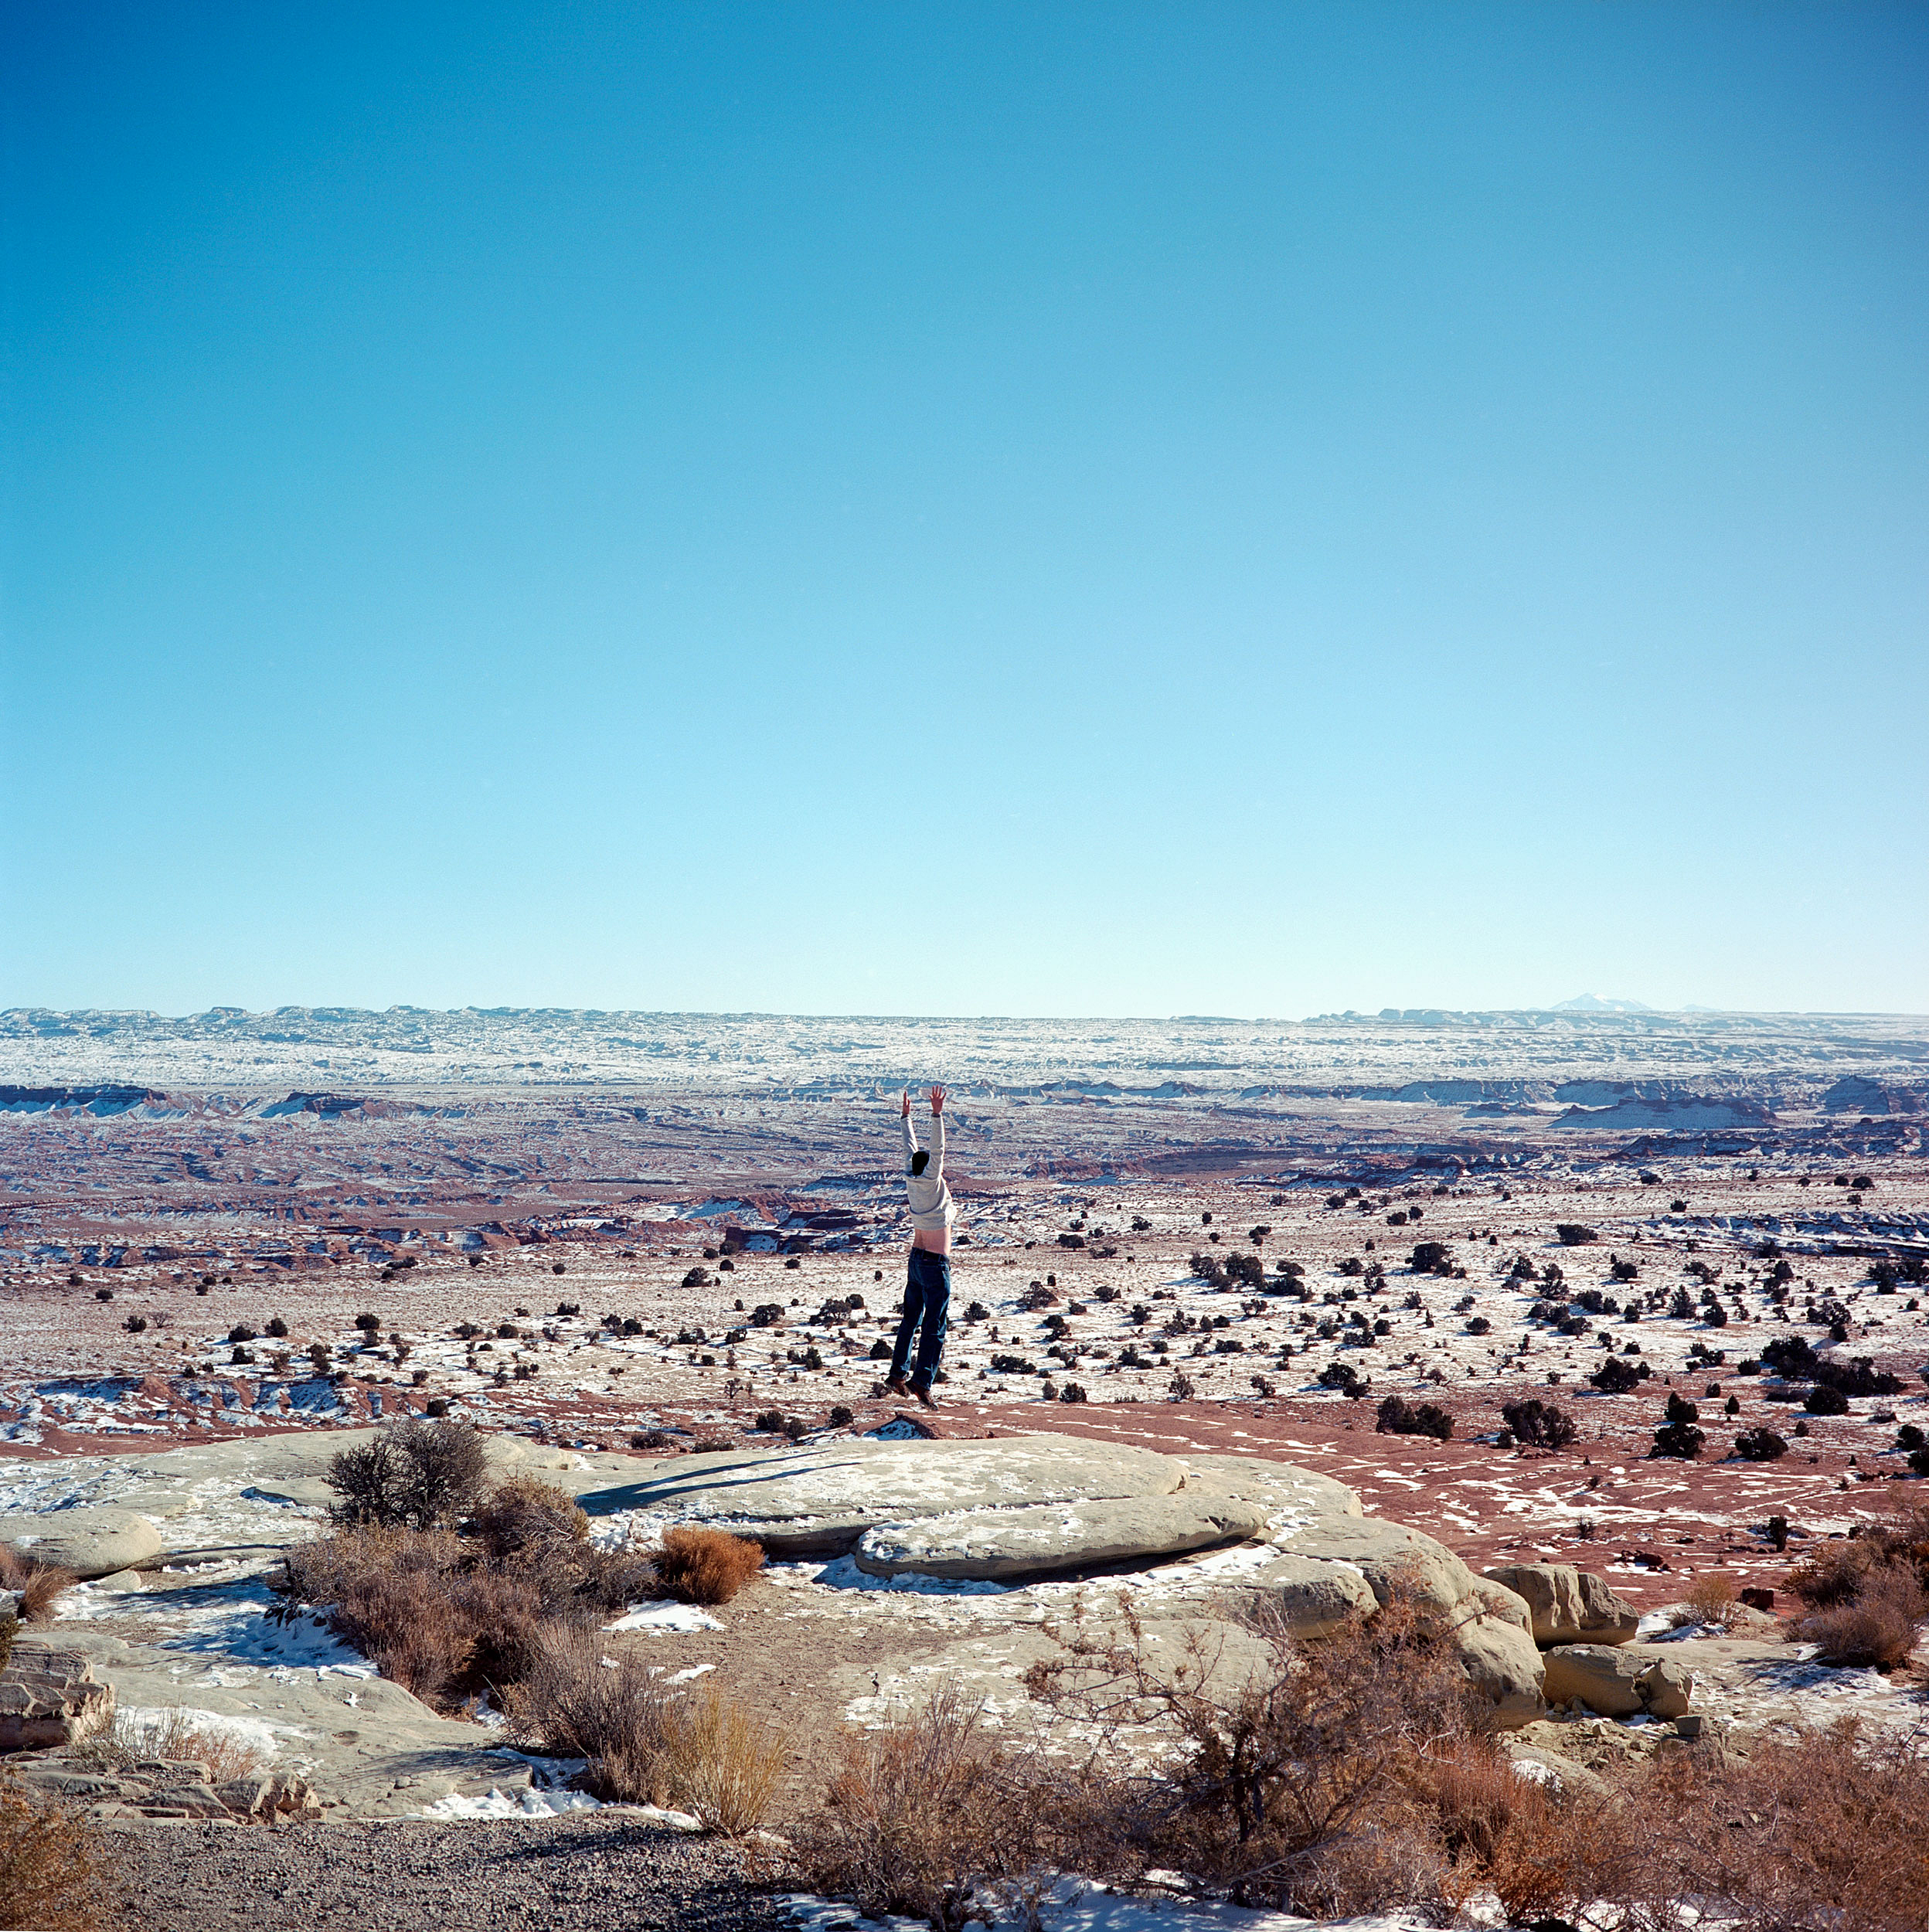 A man jumps in the air for a photograph at the Sand Bench Viewing Area in Utah. The pullout features spectacular views of the San Rafael Swell, an area managed by the Bureau of Land Management, consists of a giant dome-shaped anticline of sandstone, shale, and limestone that was pushed up during the Paleocene Laramide Orogeny 60-40 million years ago.